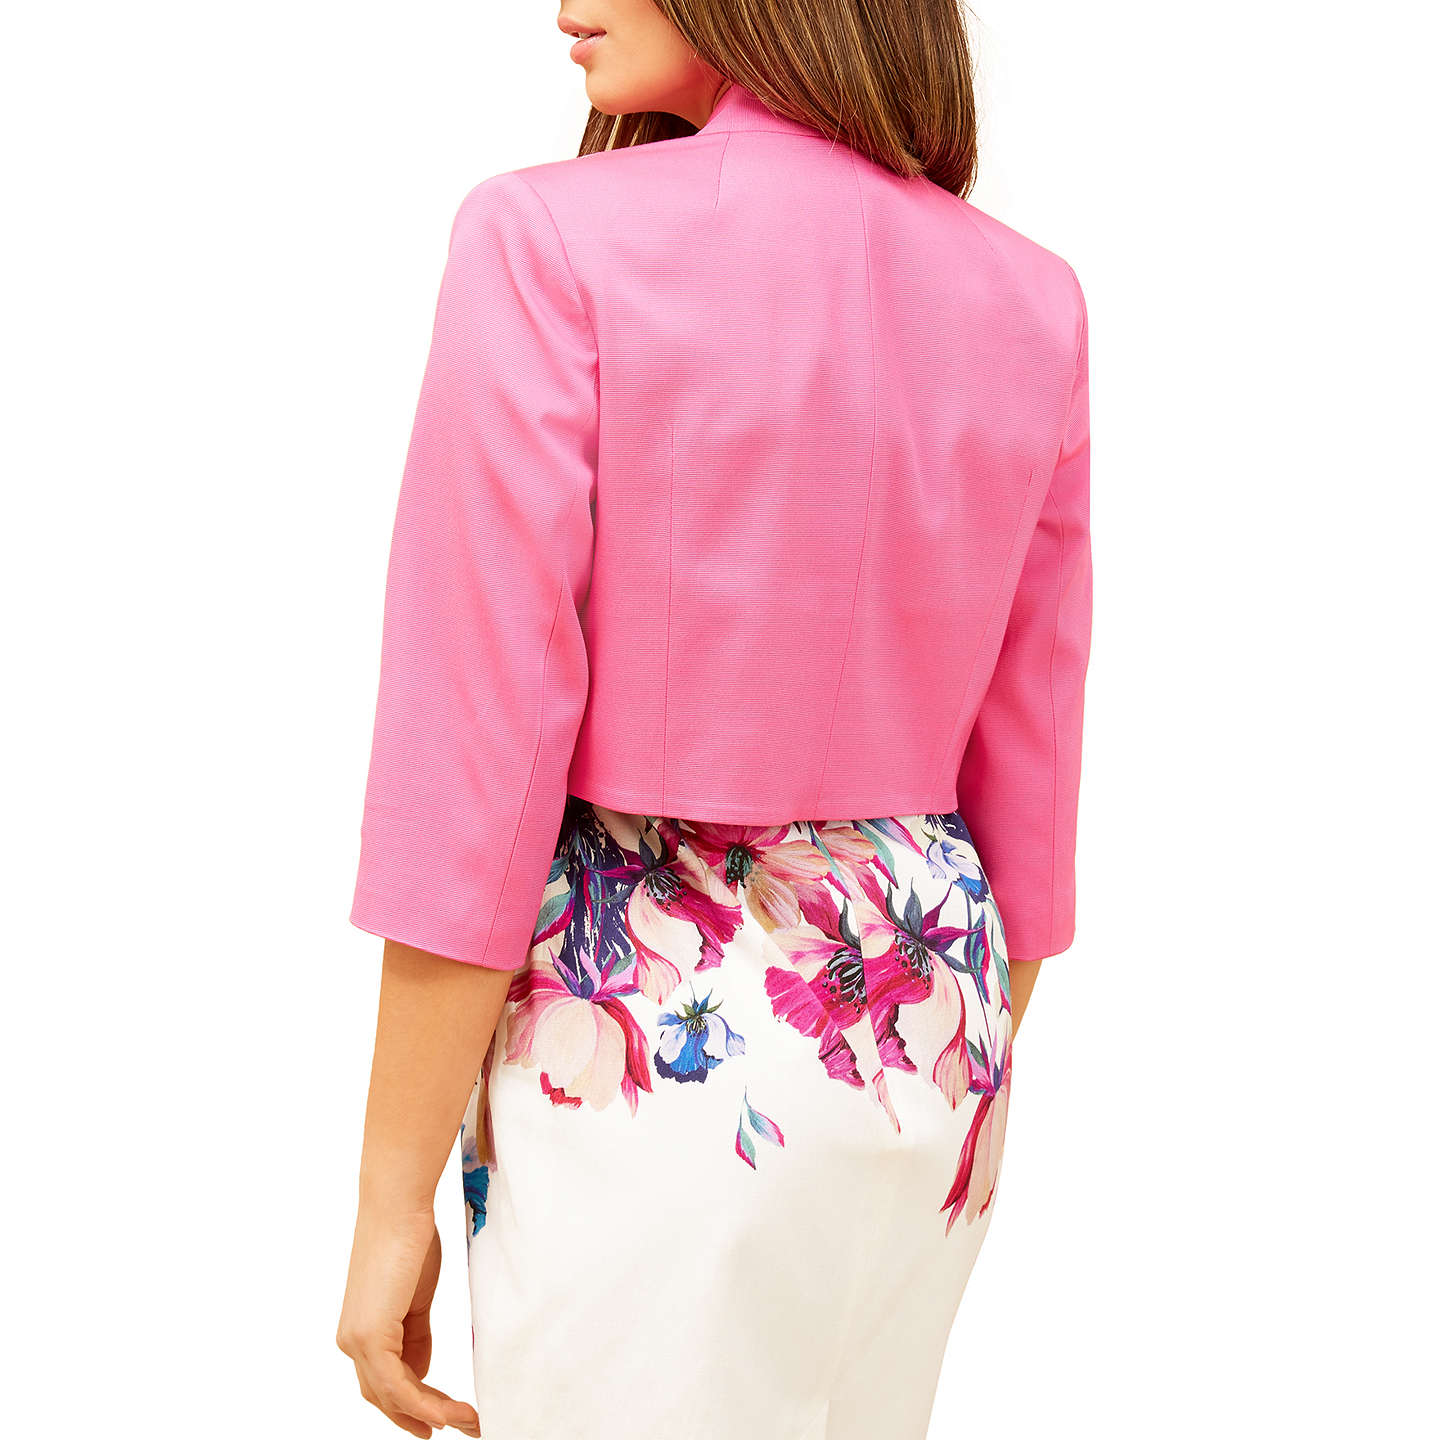 BuyFenn Wright Manson Lichtenstein Jacket, Bright Pink, 8 Online at johnlewis.com